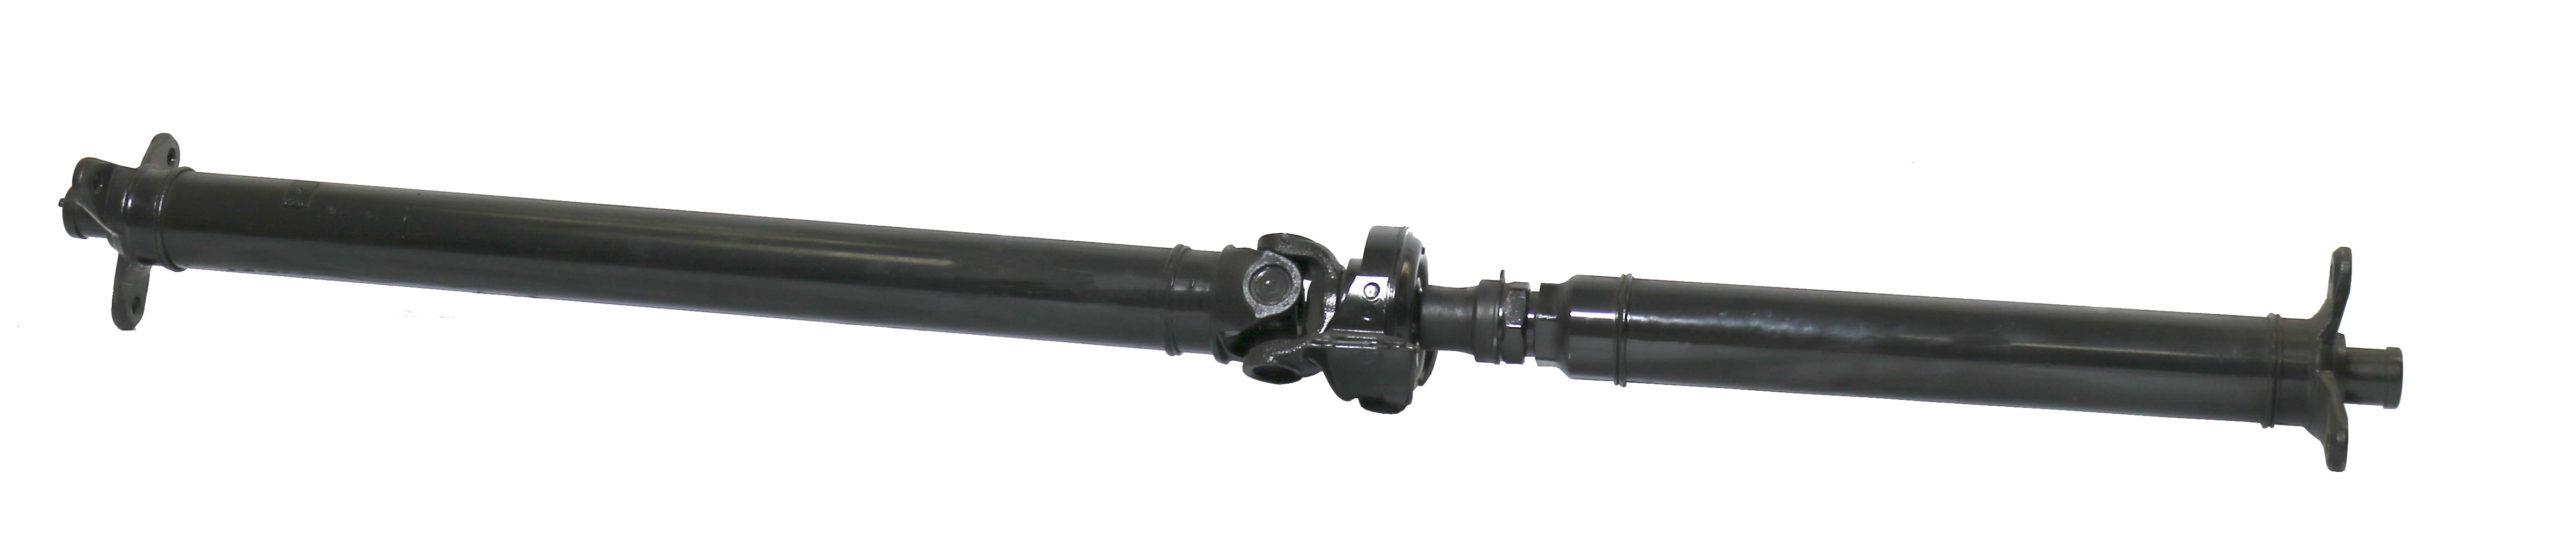 Lexus IS350 rear driveshaft.